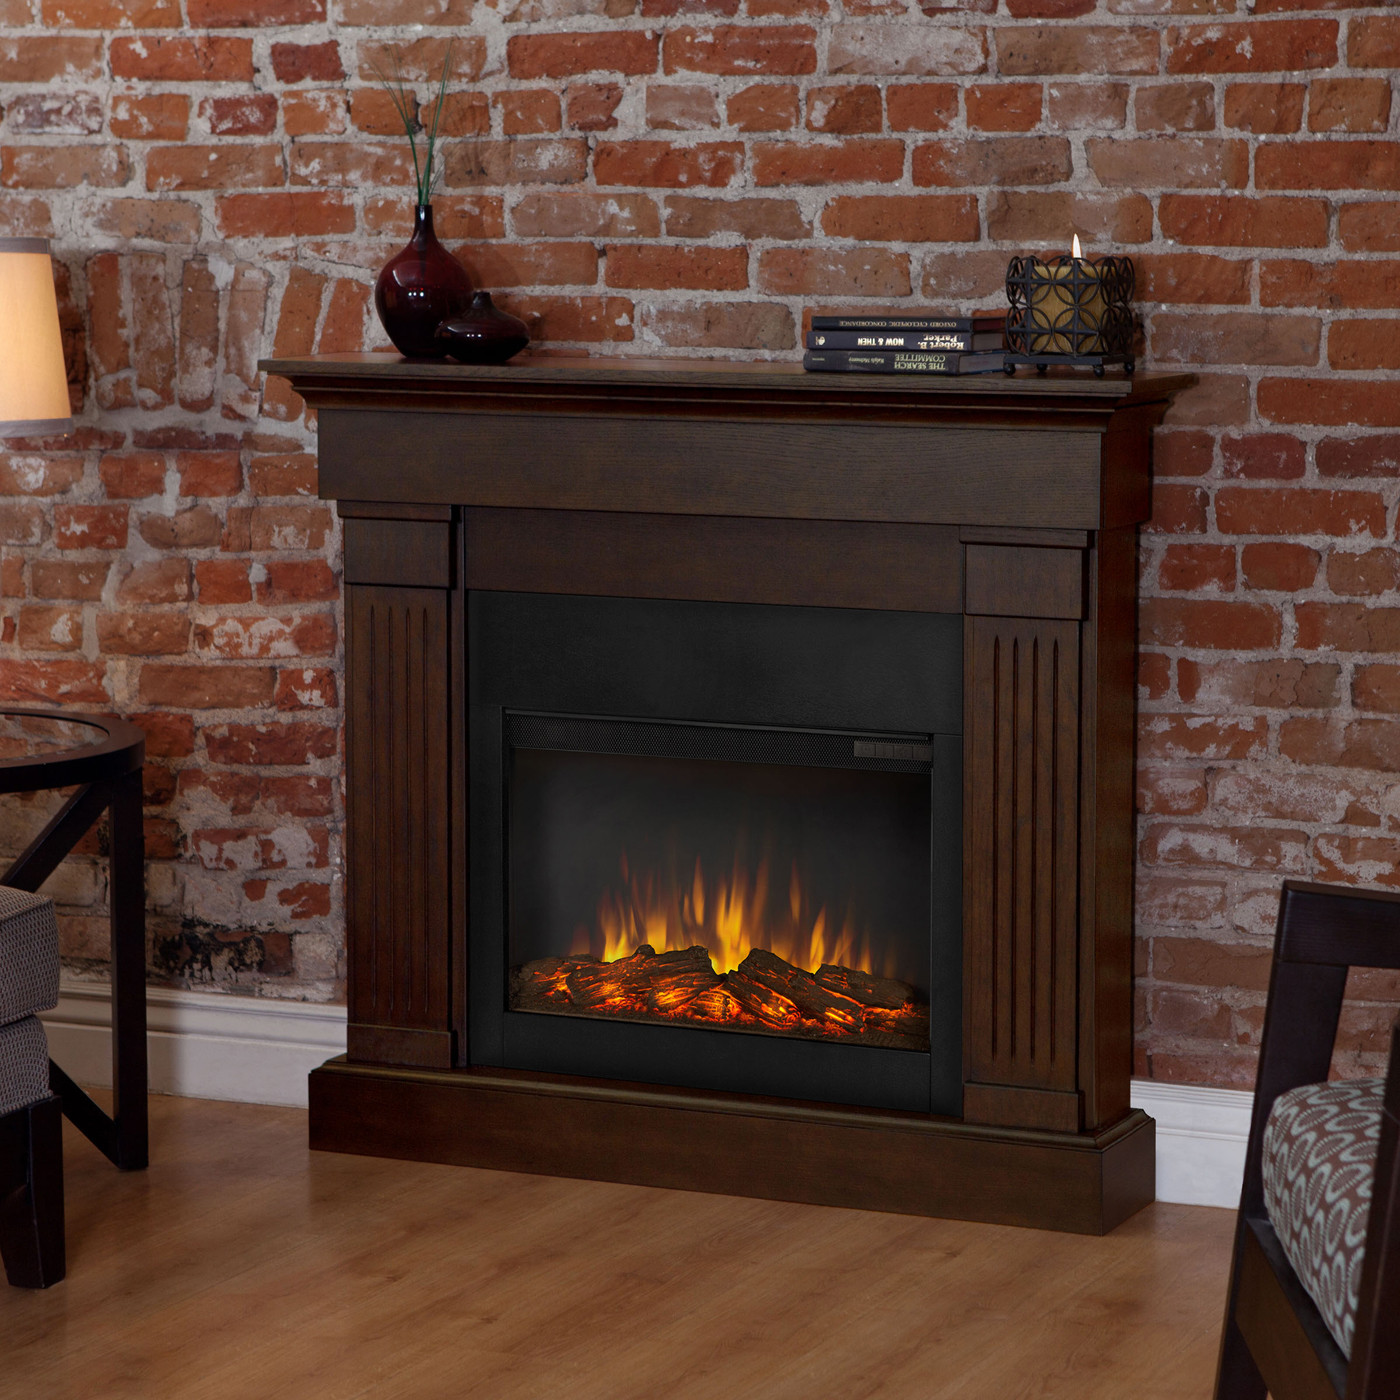 Best ideas about Real Flame Electric Fireplace . Save or Pin Real Flame 8020E Crawford Indoor Electric Fireplace Now.